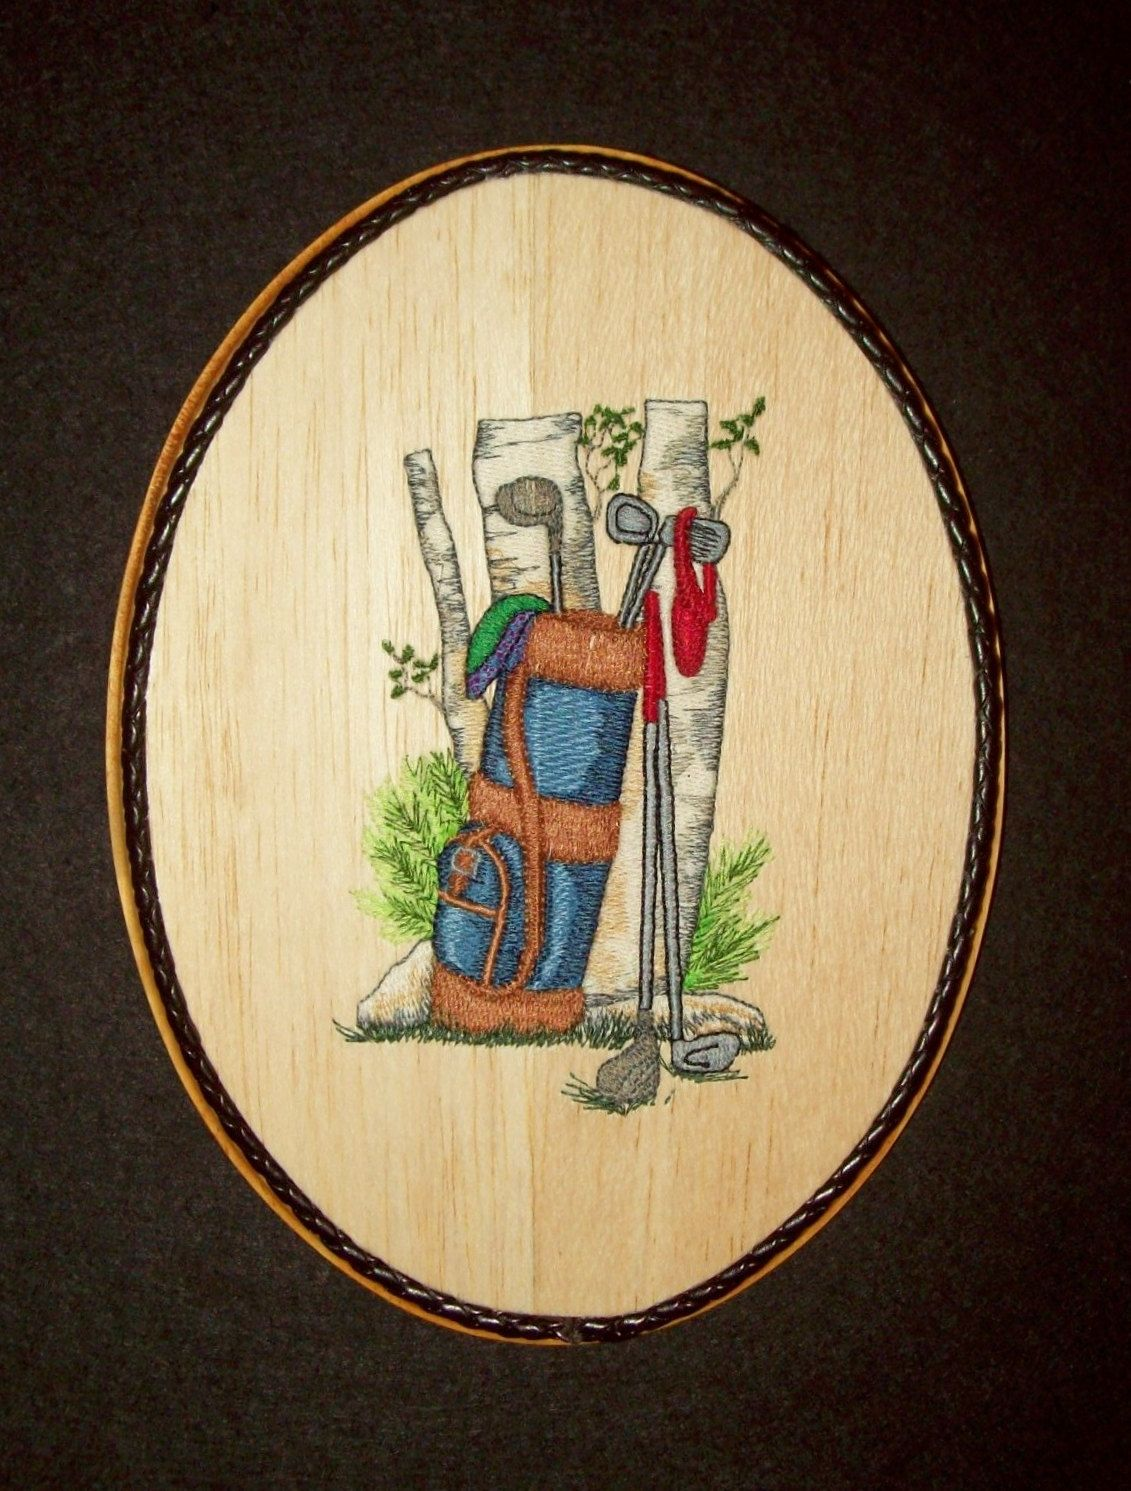 Golf Wall Decor Wood Embroidery Art, Gift for Golfers, Office Wall ...